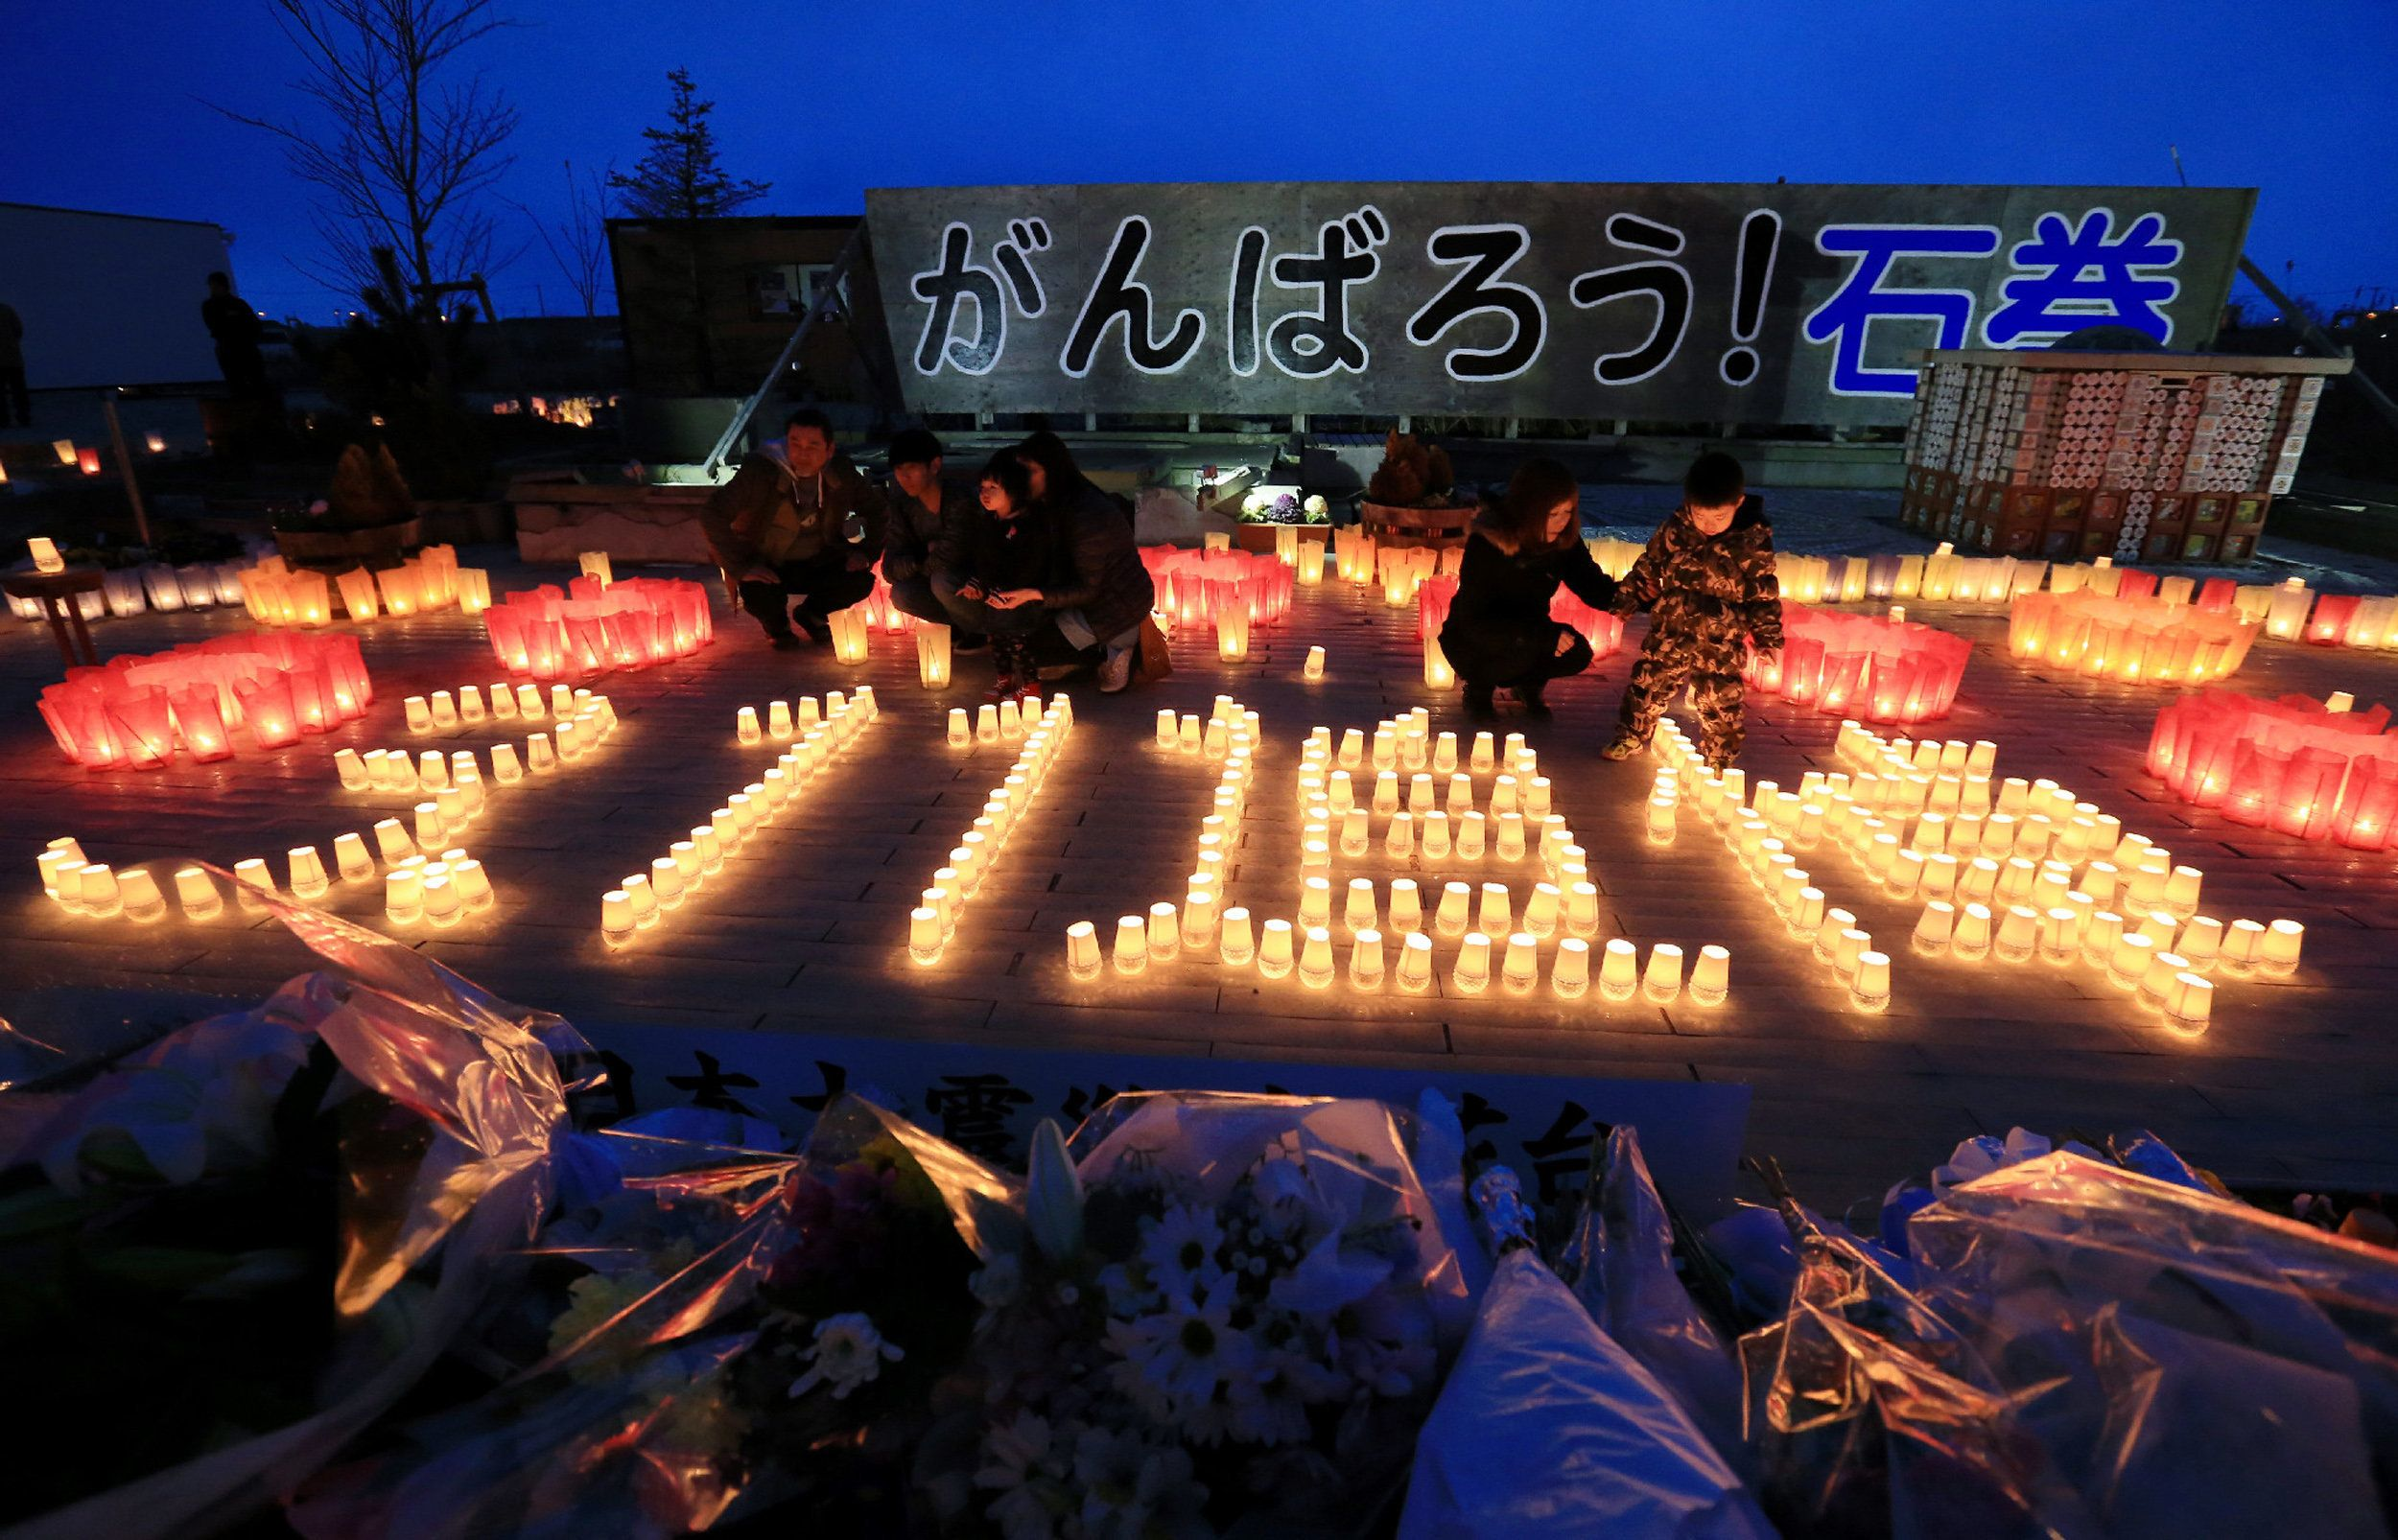 Residents lit  candles saying '3.11 memorial' in Ishinomaki, Miyagi prefecture on March 11, 2016.     Japan pauses on March 11 to mark five years since an offshore earthquake spawned a monster tsunami that left about 18,500 people dead or missing along its northeastern coast and sparked the worst nuclear disaster in a quarter century. / AFP / JIJI PRESS / JIJI PRESS / Japan OUT        (Photo credit should read JIJI PRESS/AFP/Getty Images)